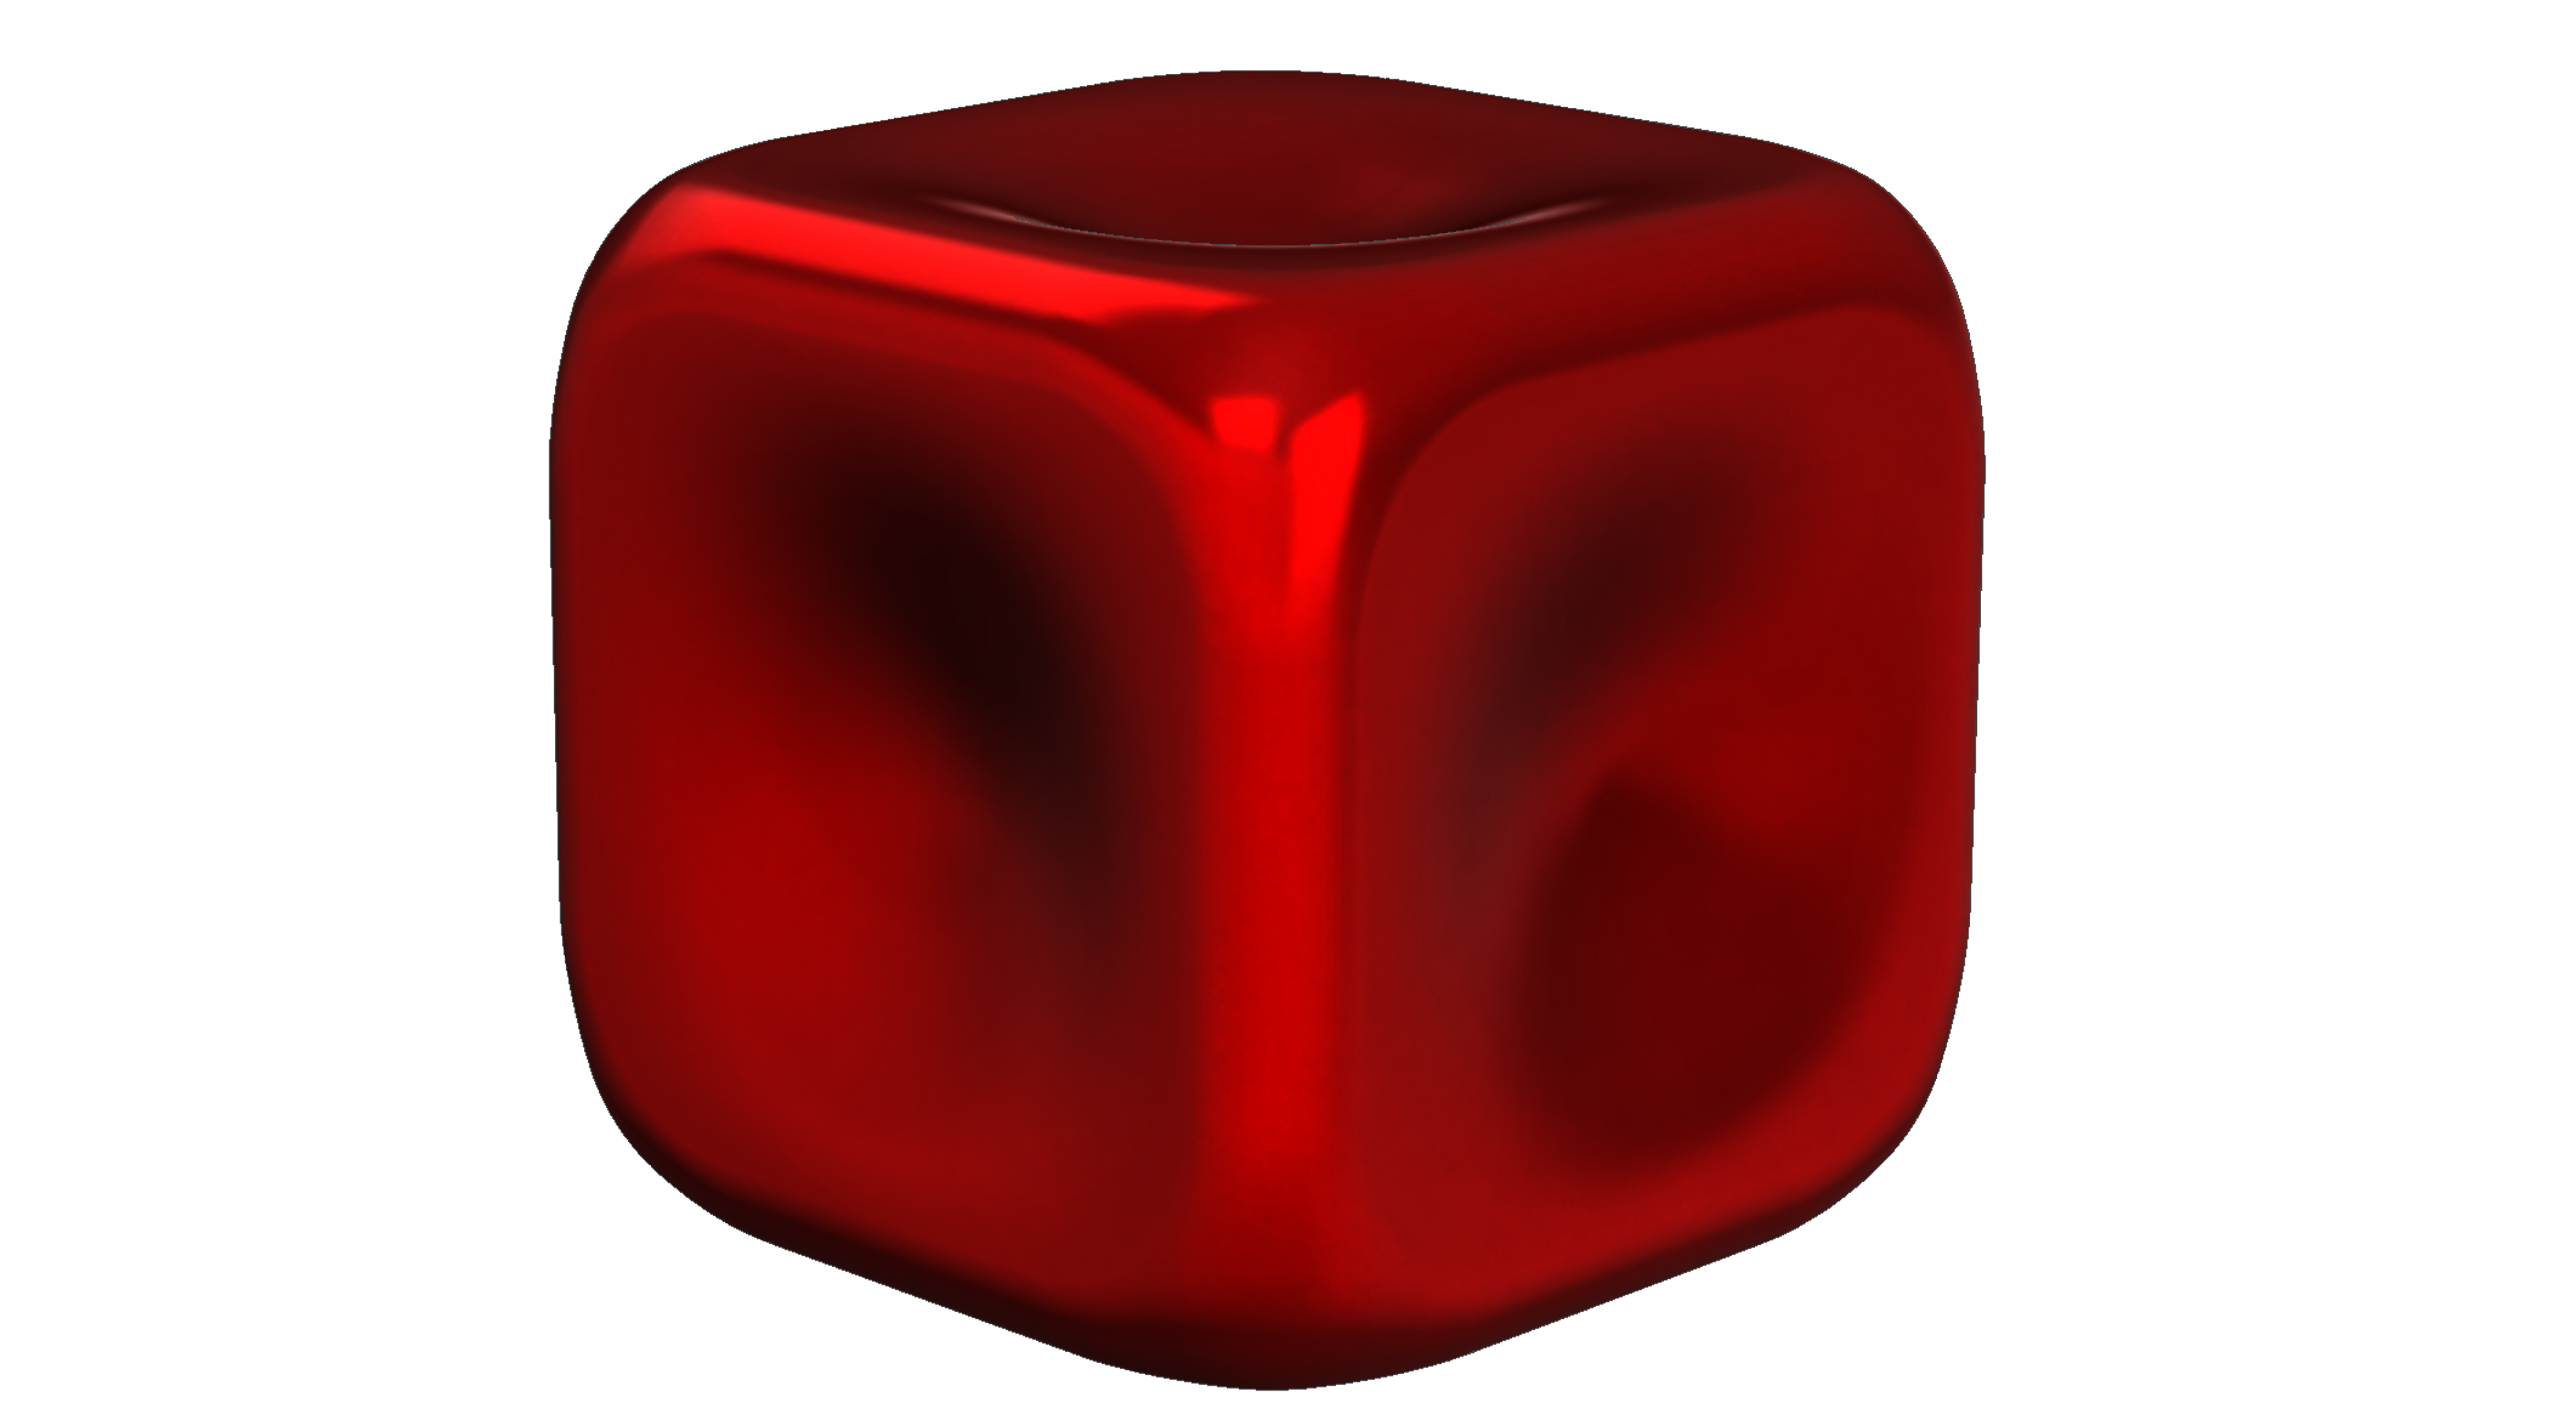 The shiniest red cube imaginable!